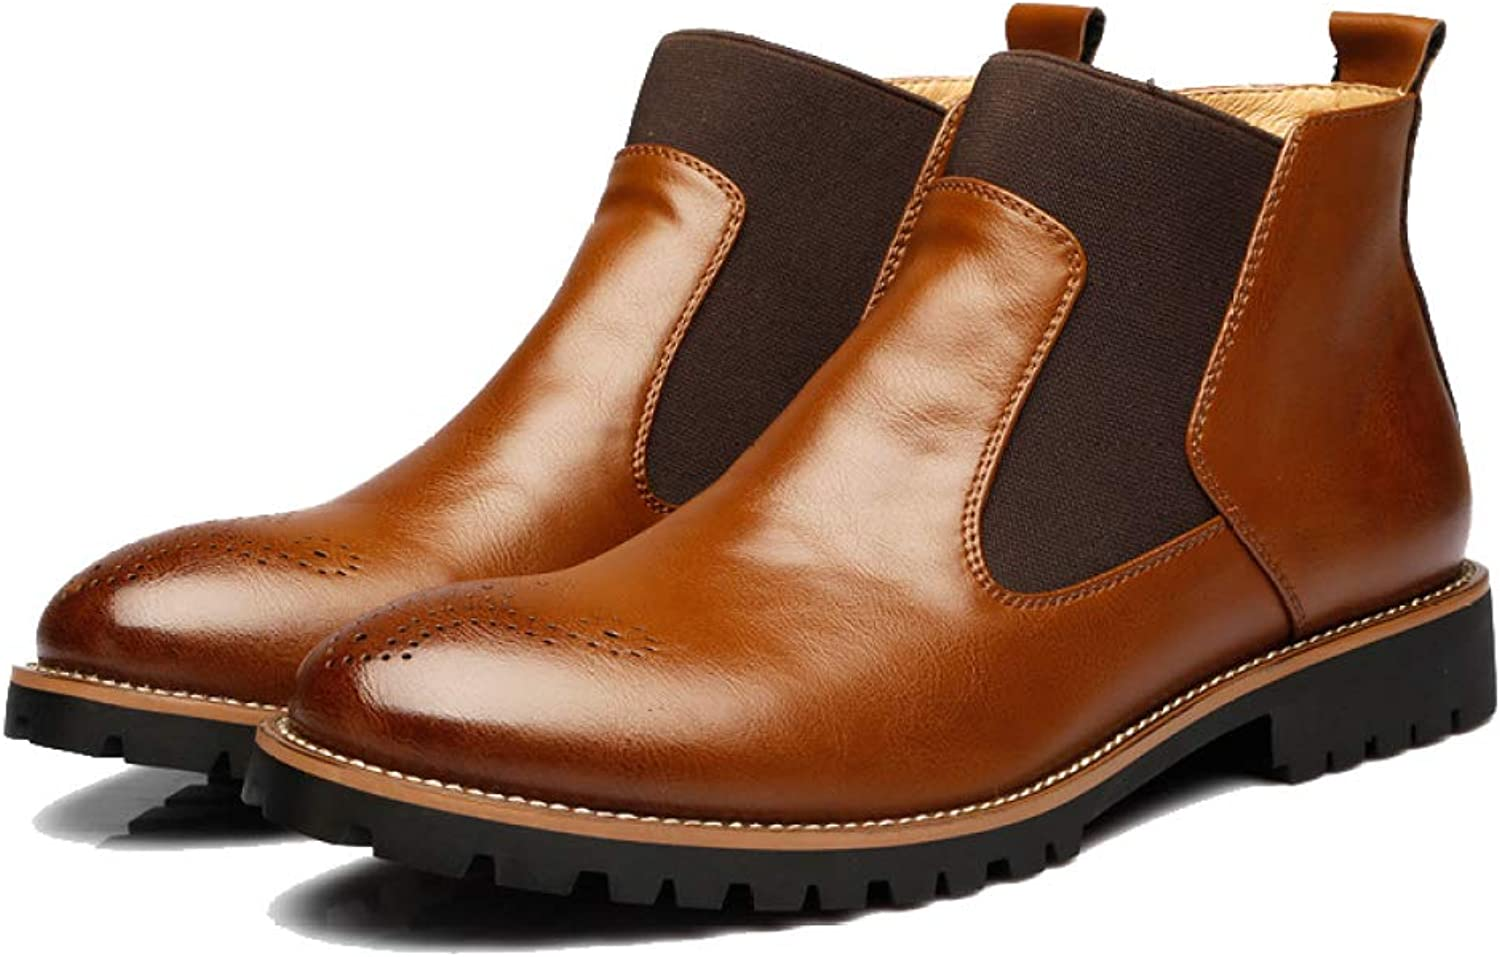 DSFGHE Mens Chelsea Boots Martin shoes Outdoors Warm Lining Skidproof Boots